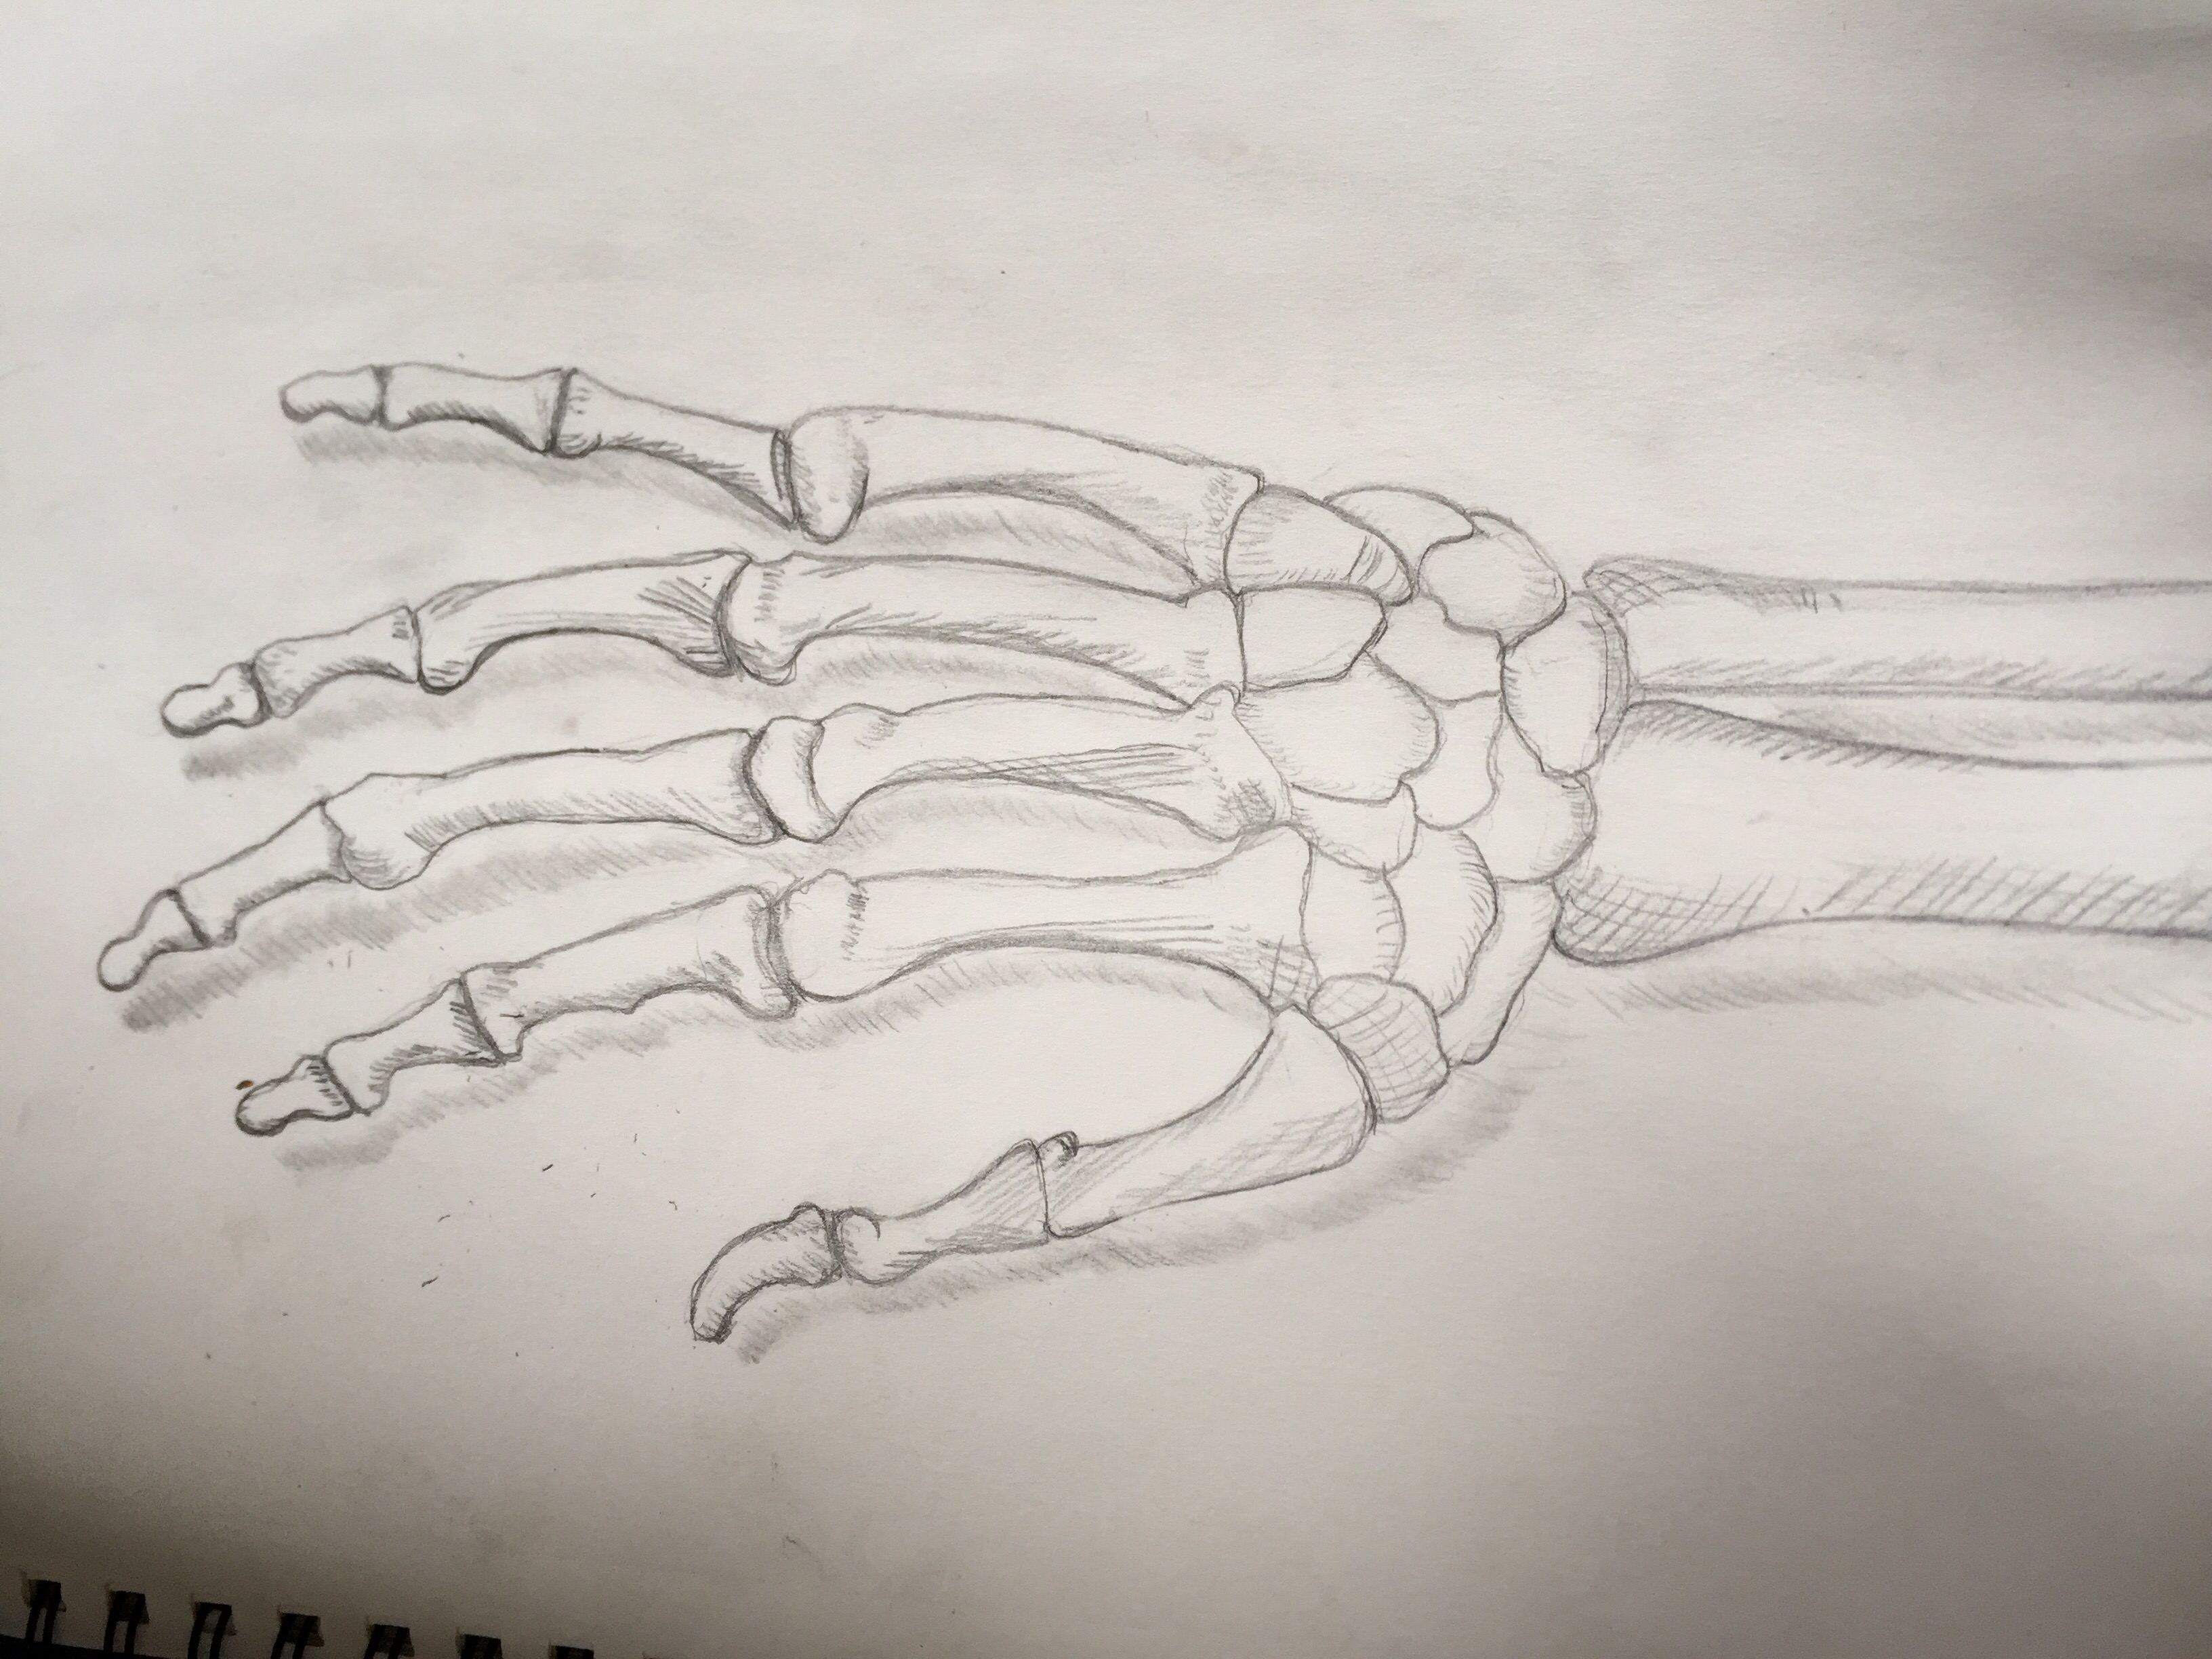 Skeleton Hand Drawing By Bioniquanne1 On Deviantart